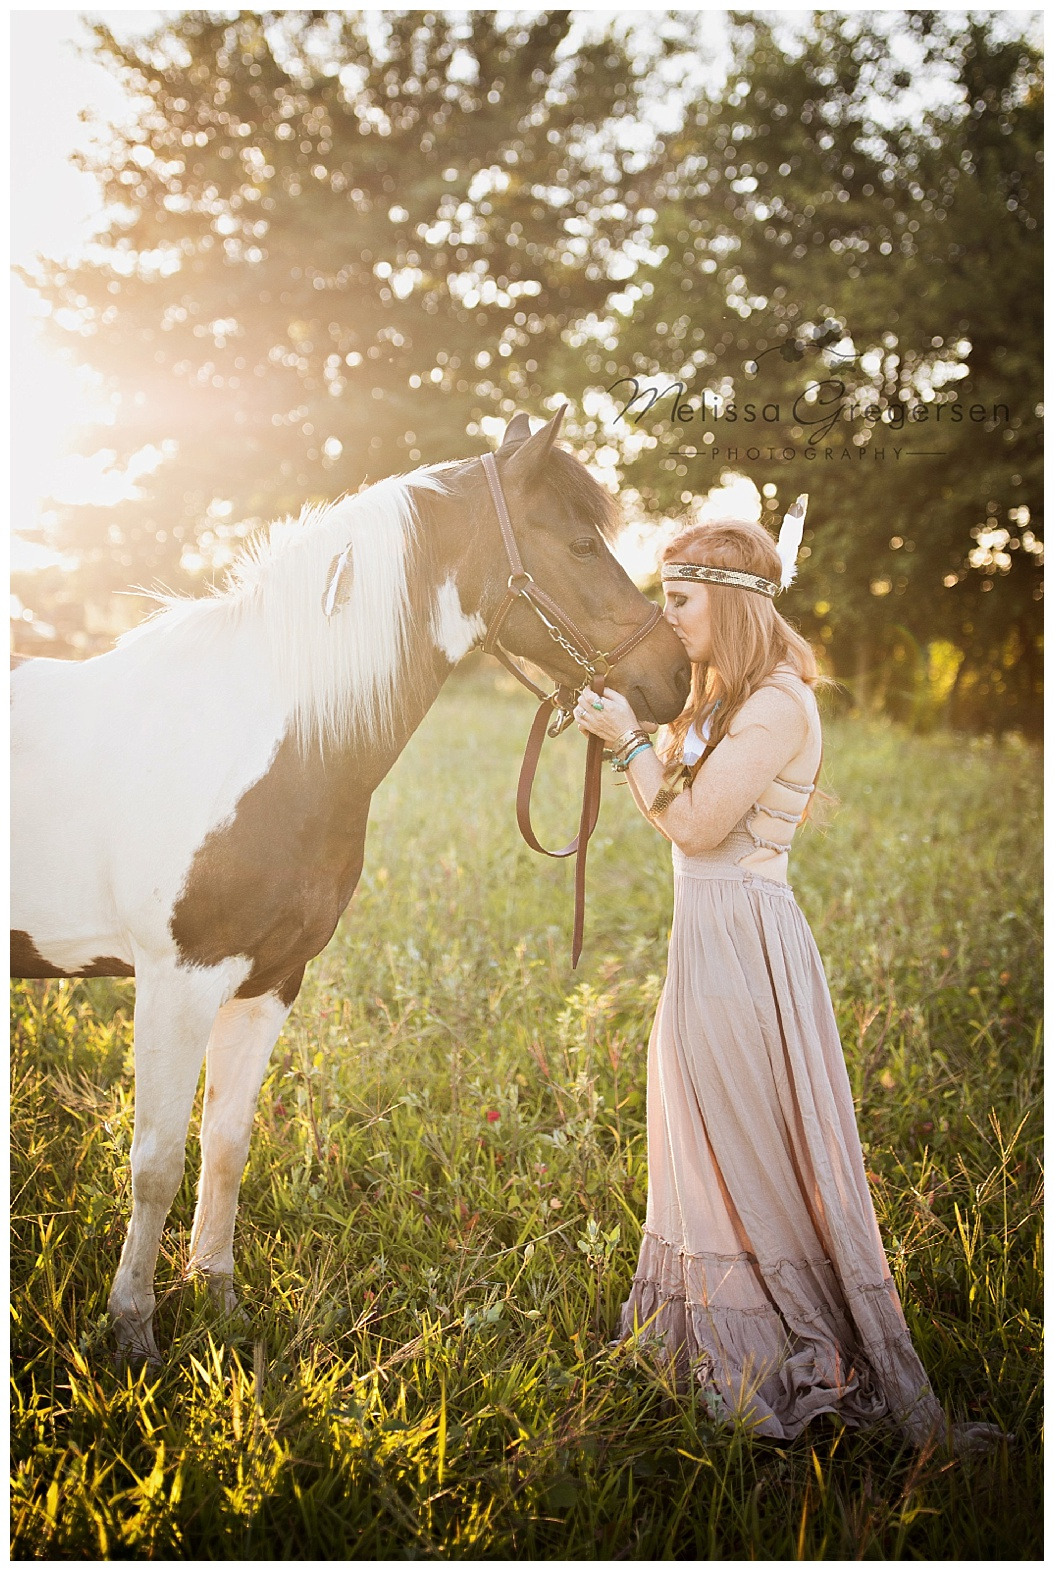 The sun glare really sets off this image of a horse and it's faithful human companion.